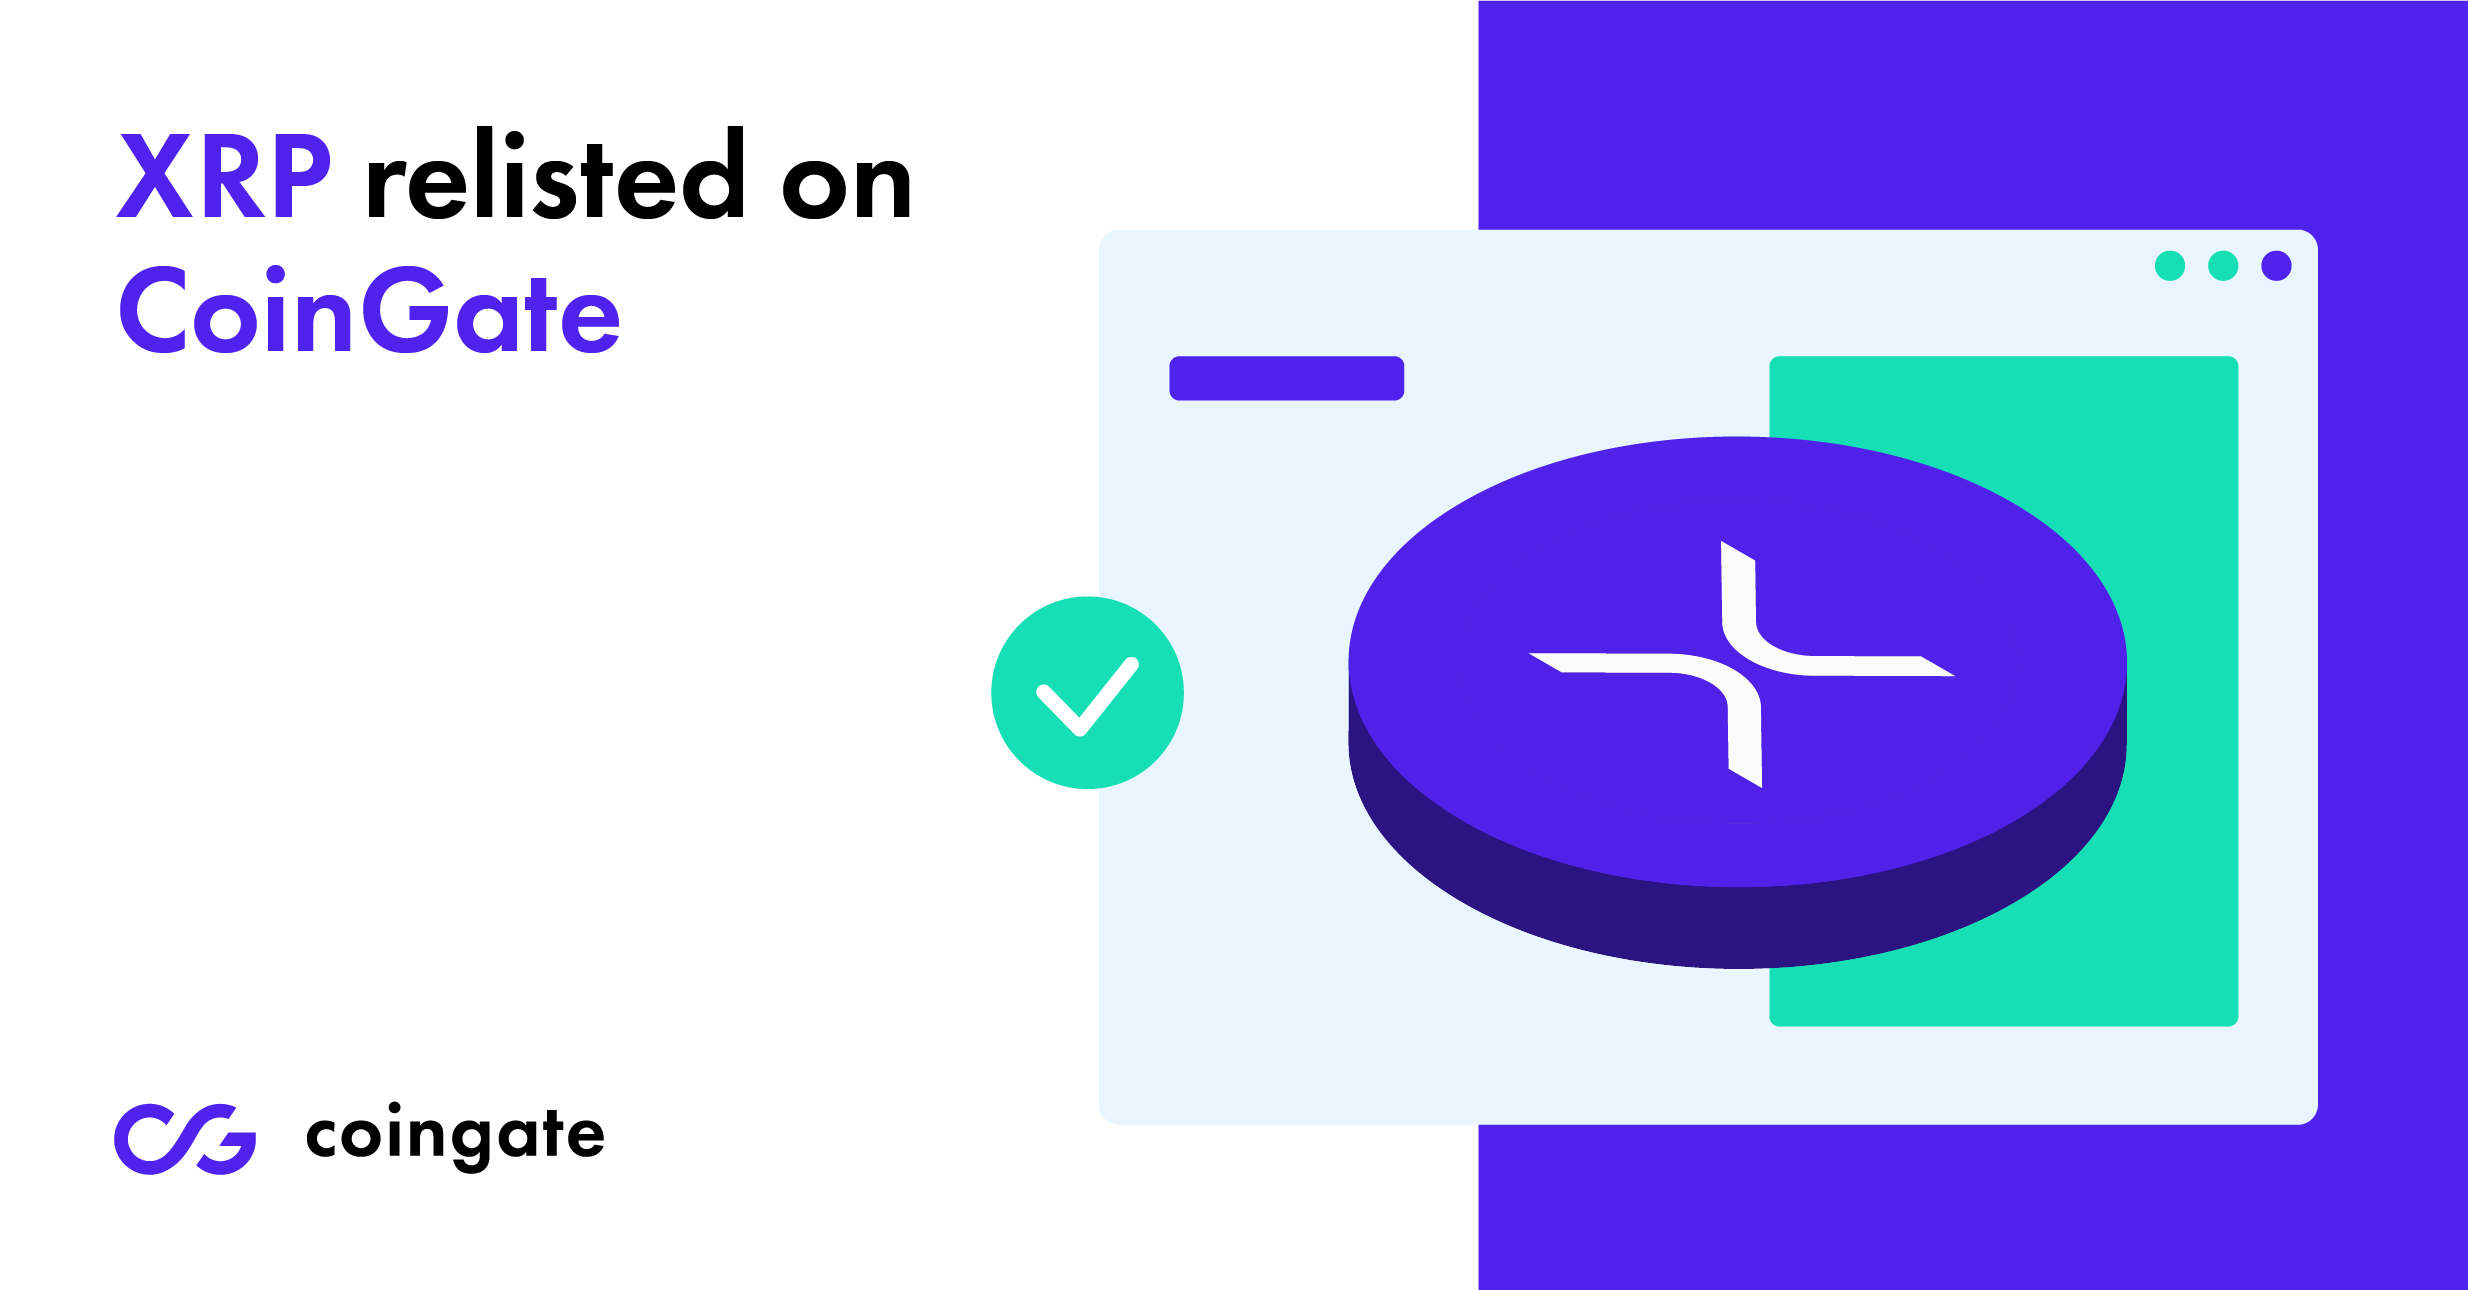 xrp relisted on CoinGate